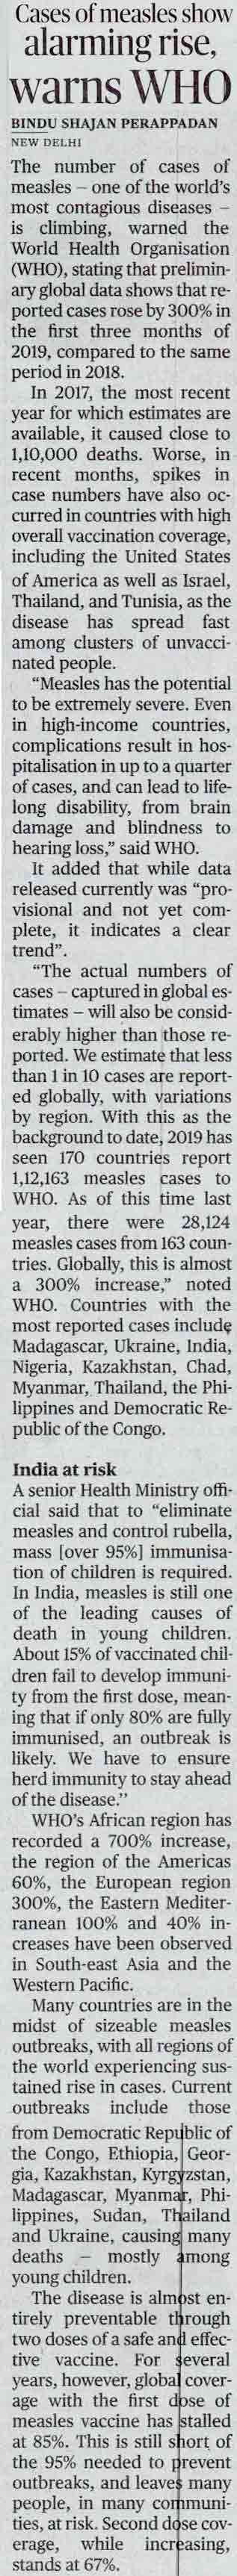 Cases of measles show alarming rise, warns WHO